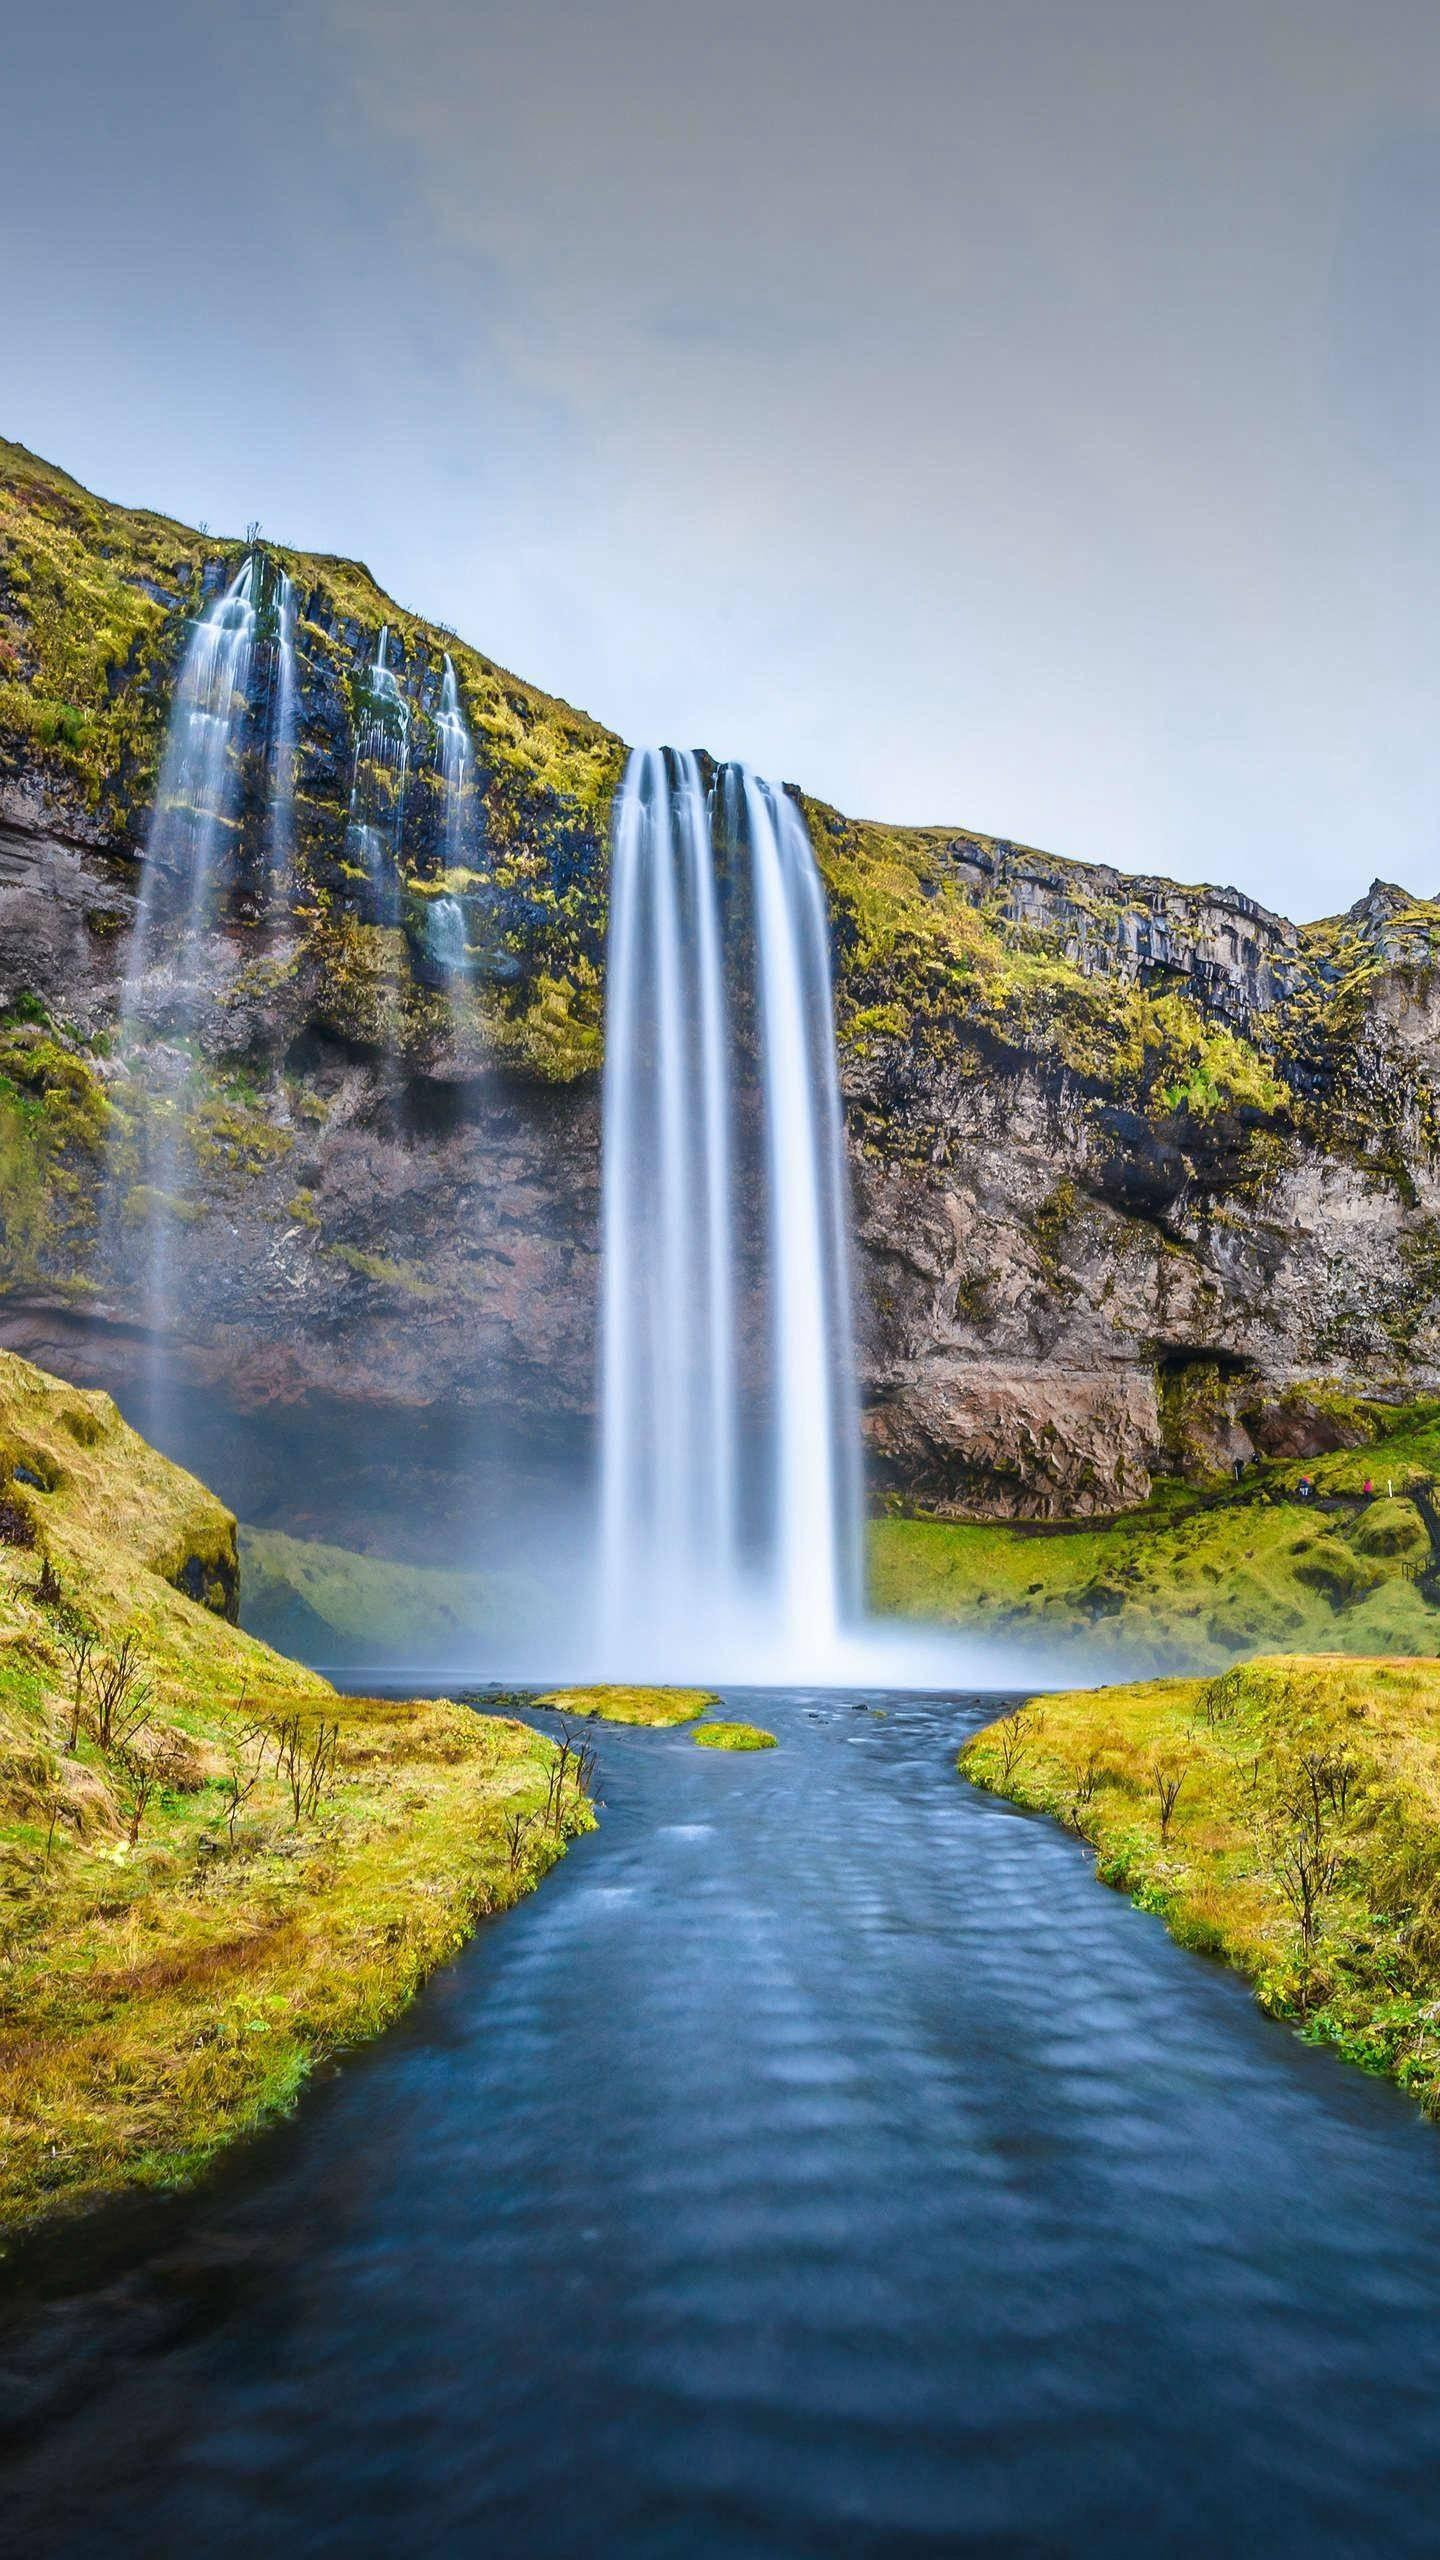 Iceland's most beautiful waterfall. The Seri Yalan Waterfall is considered to be one of the most beautiful waterfalls in Iceland, between the Cisco Achilles Falls and Selfoss.